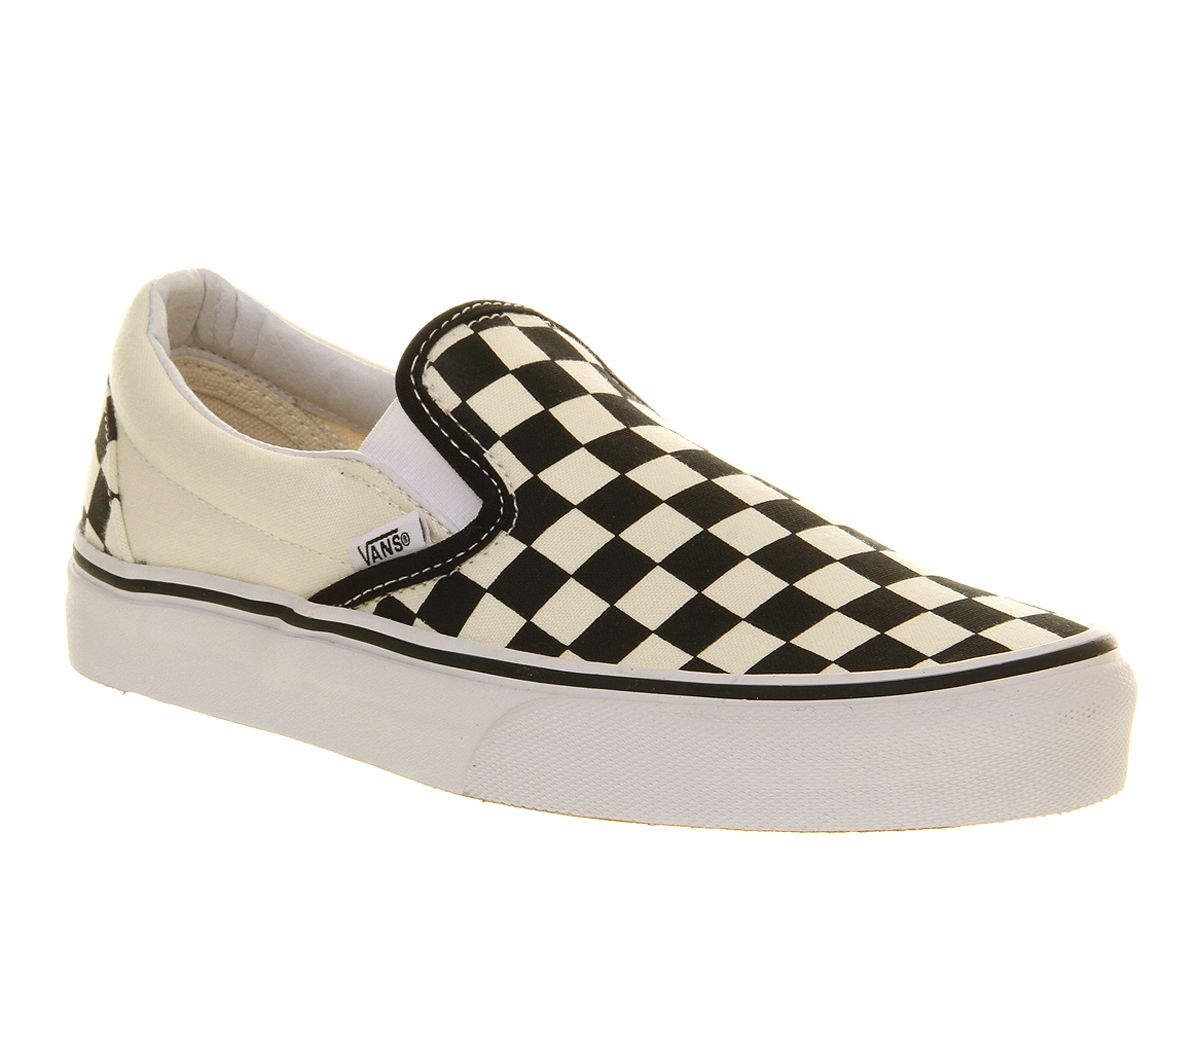 Vans classic slip on trainers